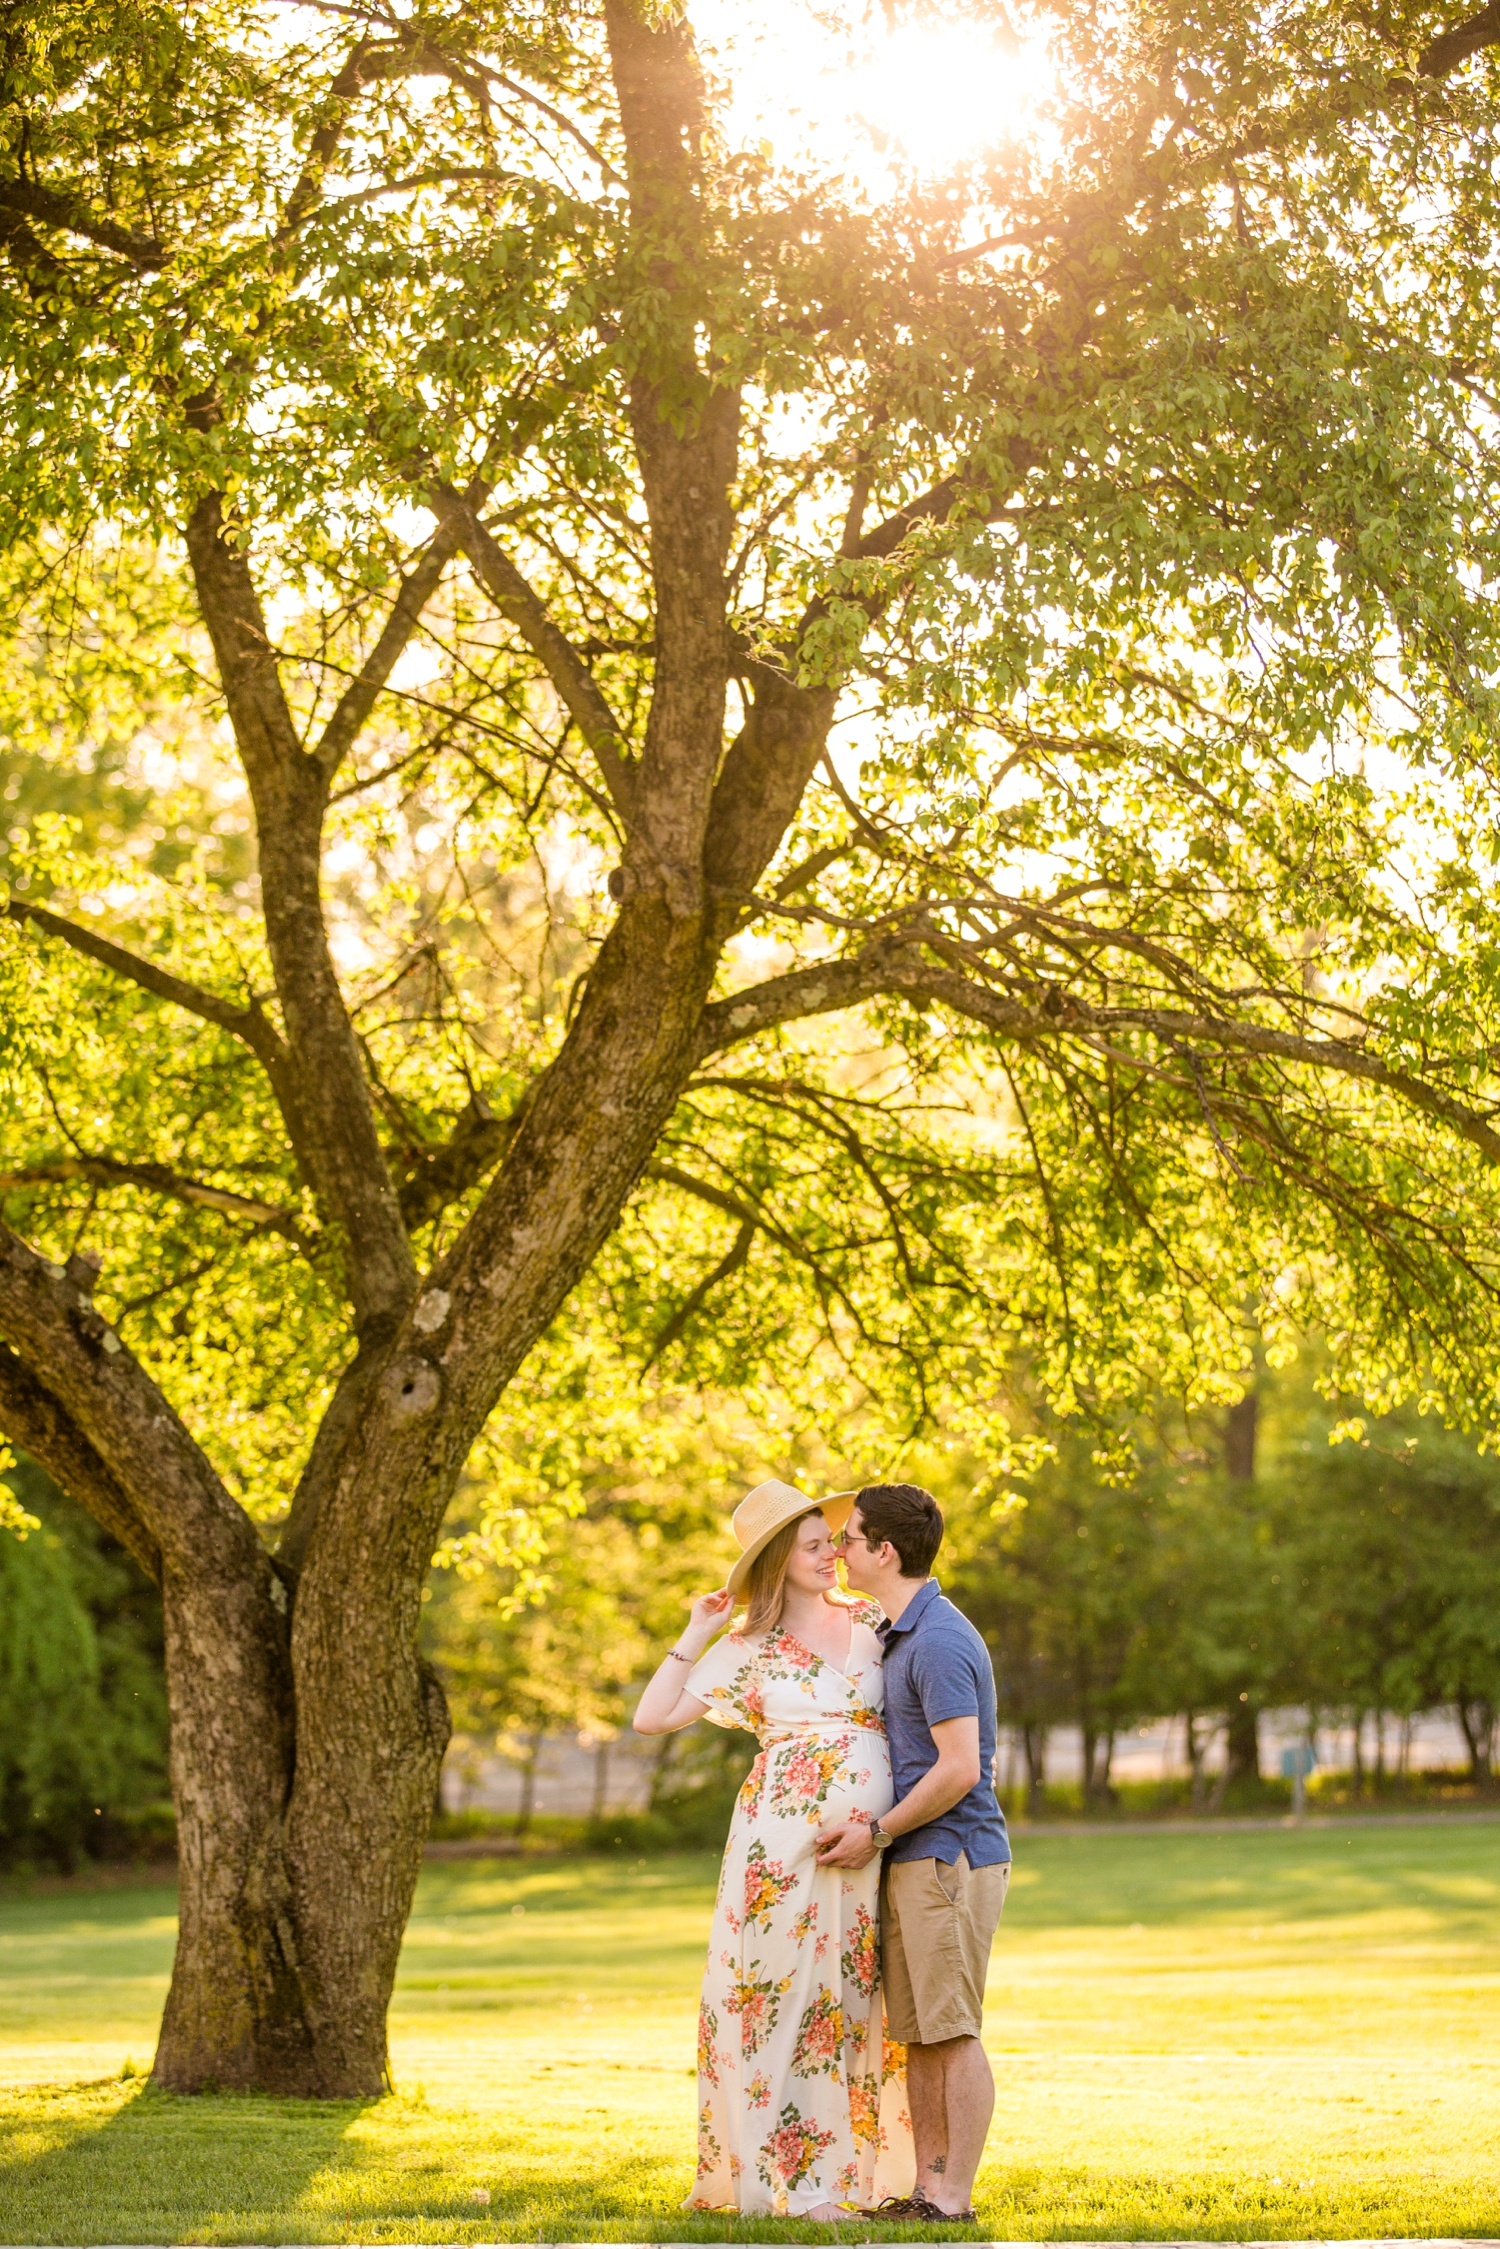 pittsburgh maternity photographer, pittsburgh family photographer, hartwood acres family photos, hartwood acres maternity photos, maternity outfit inspiration